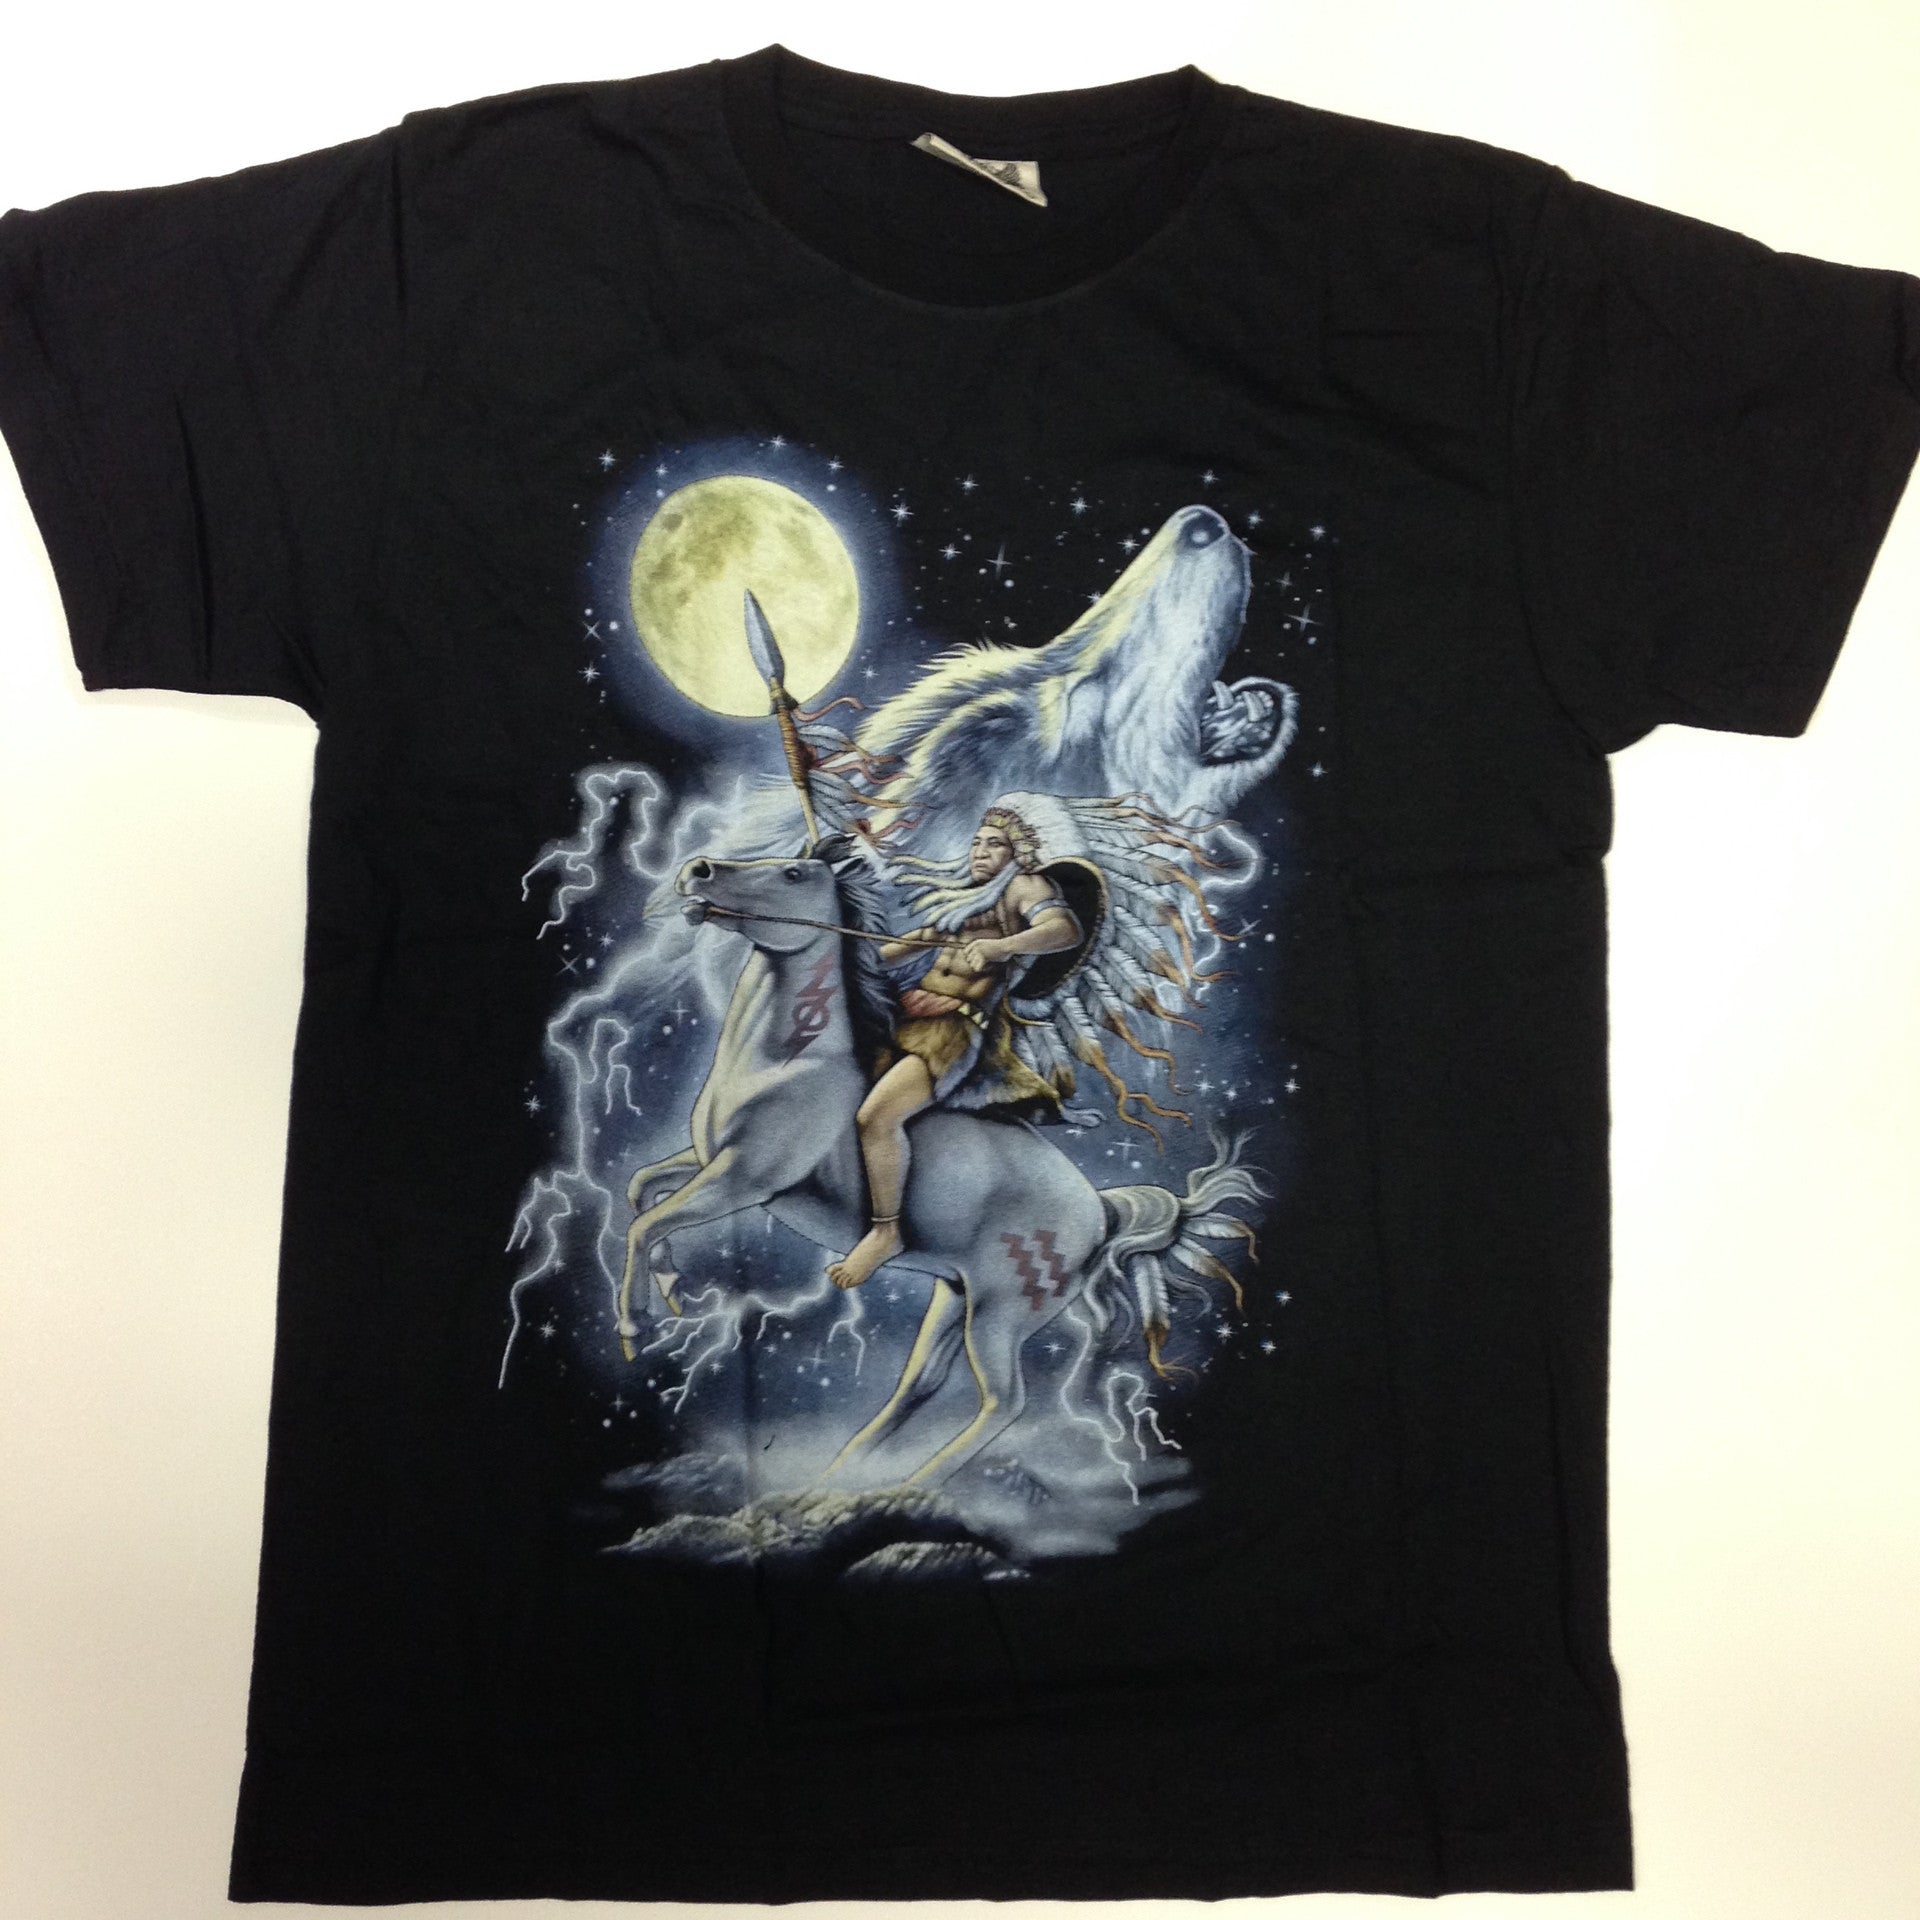 Native American on Horse w/Wolf - 100% Cotton Black T-Shirt